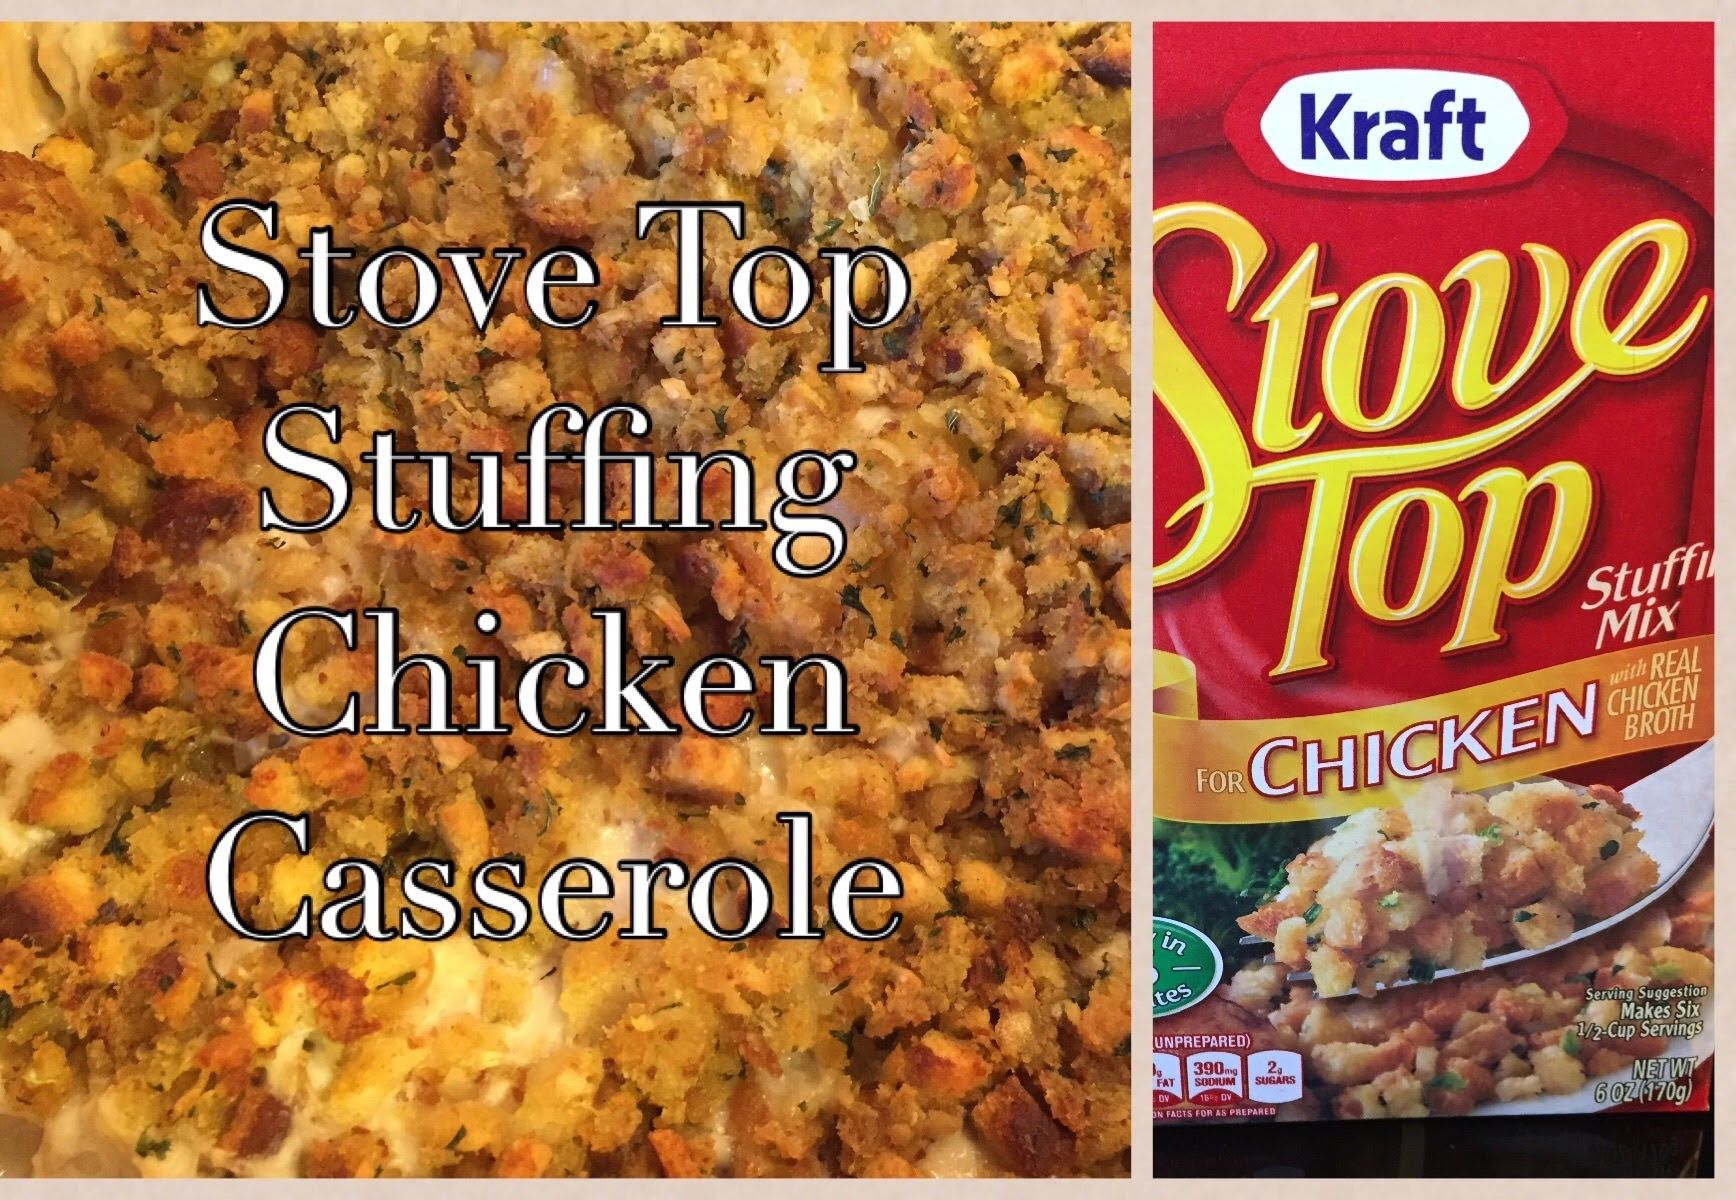 Stove Top Stuffing Chicken Casserole Recipe Kraft And Campbell S Soup Campbells Soup